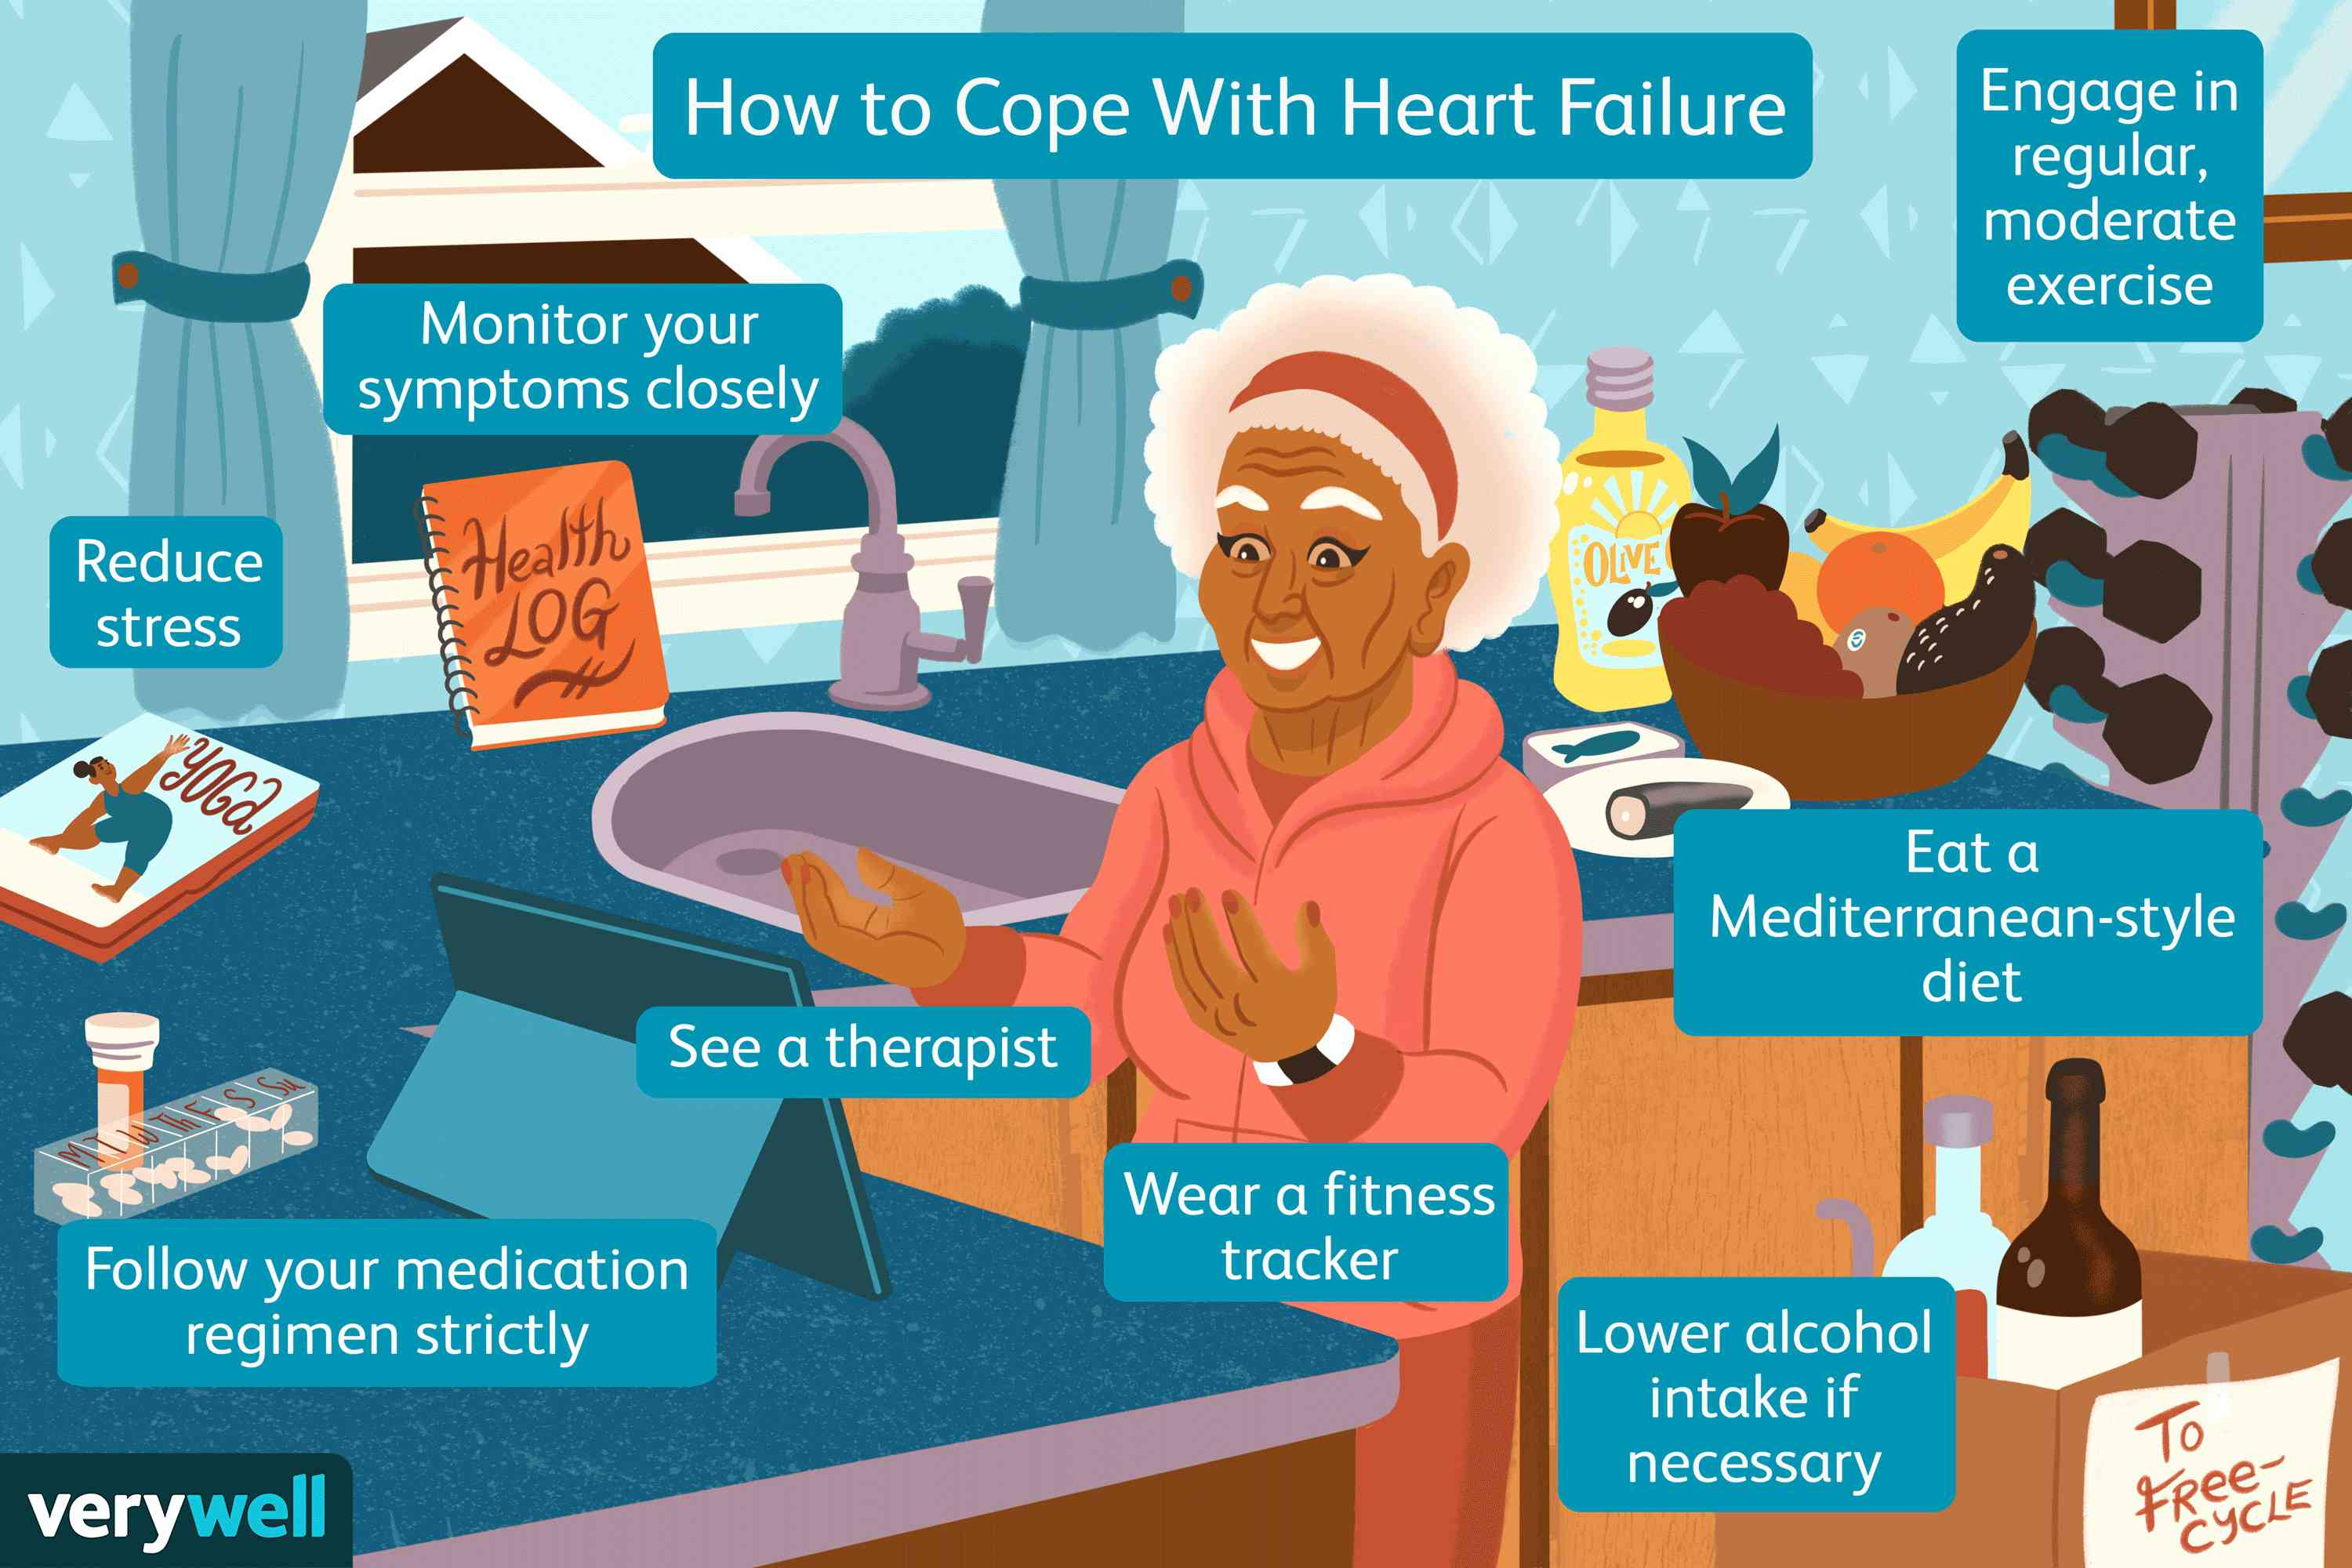 How to Cope With Heart Failure